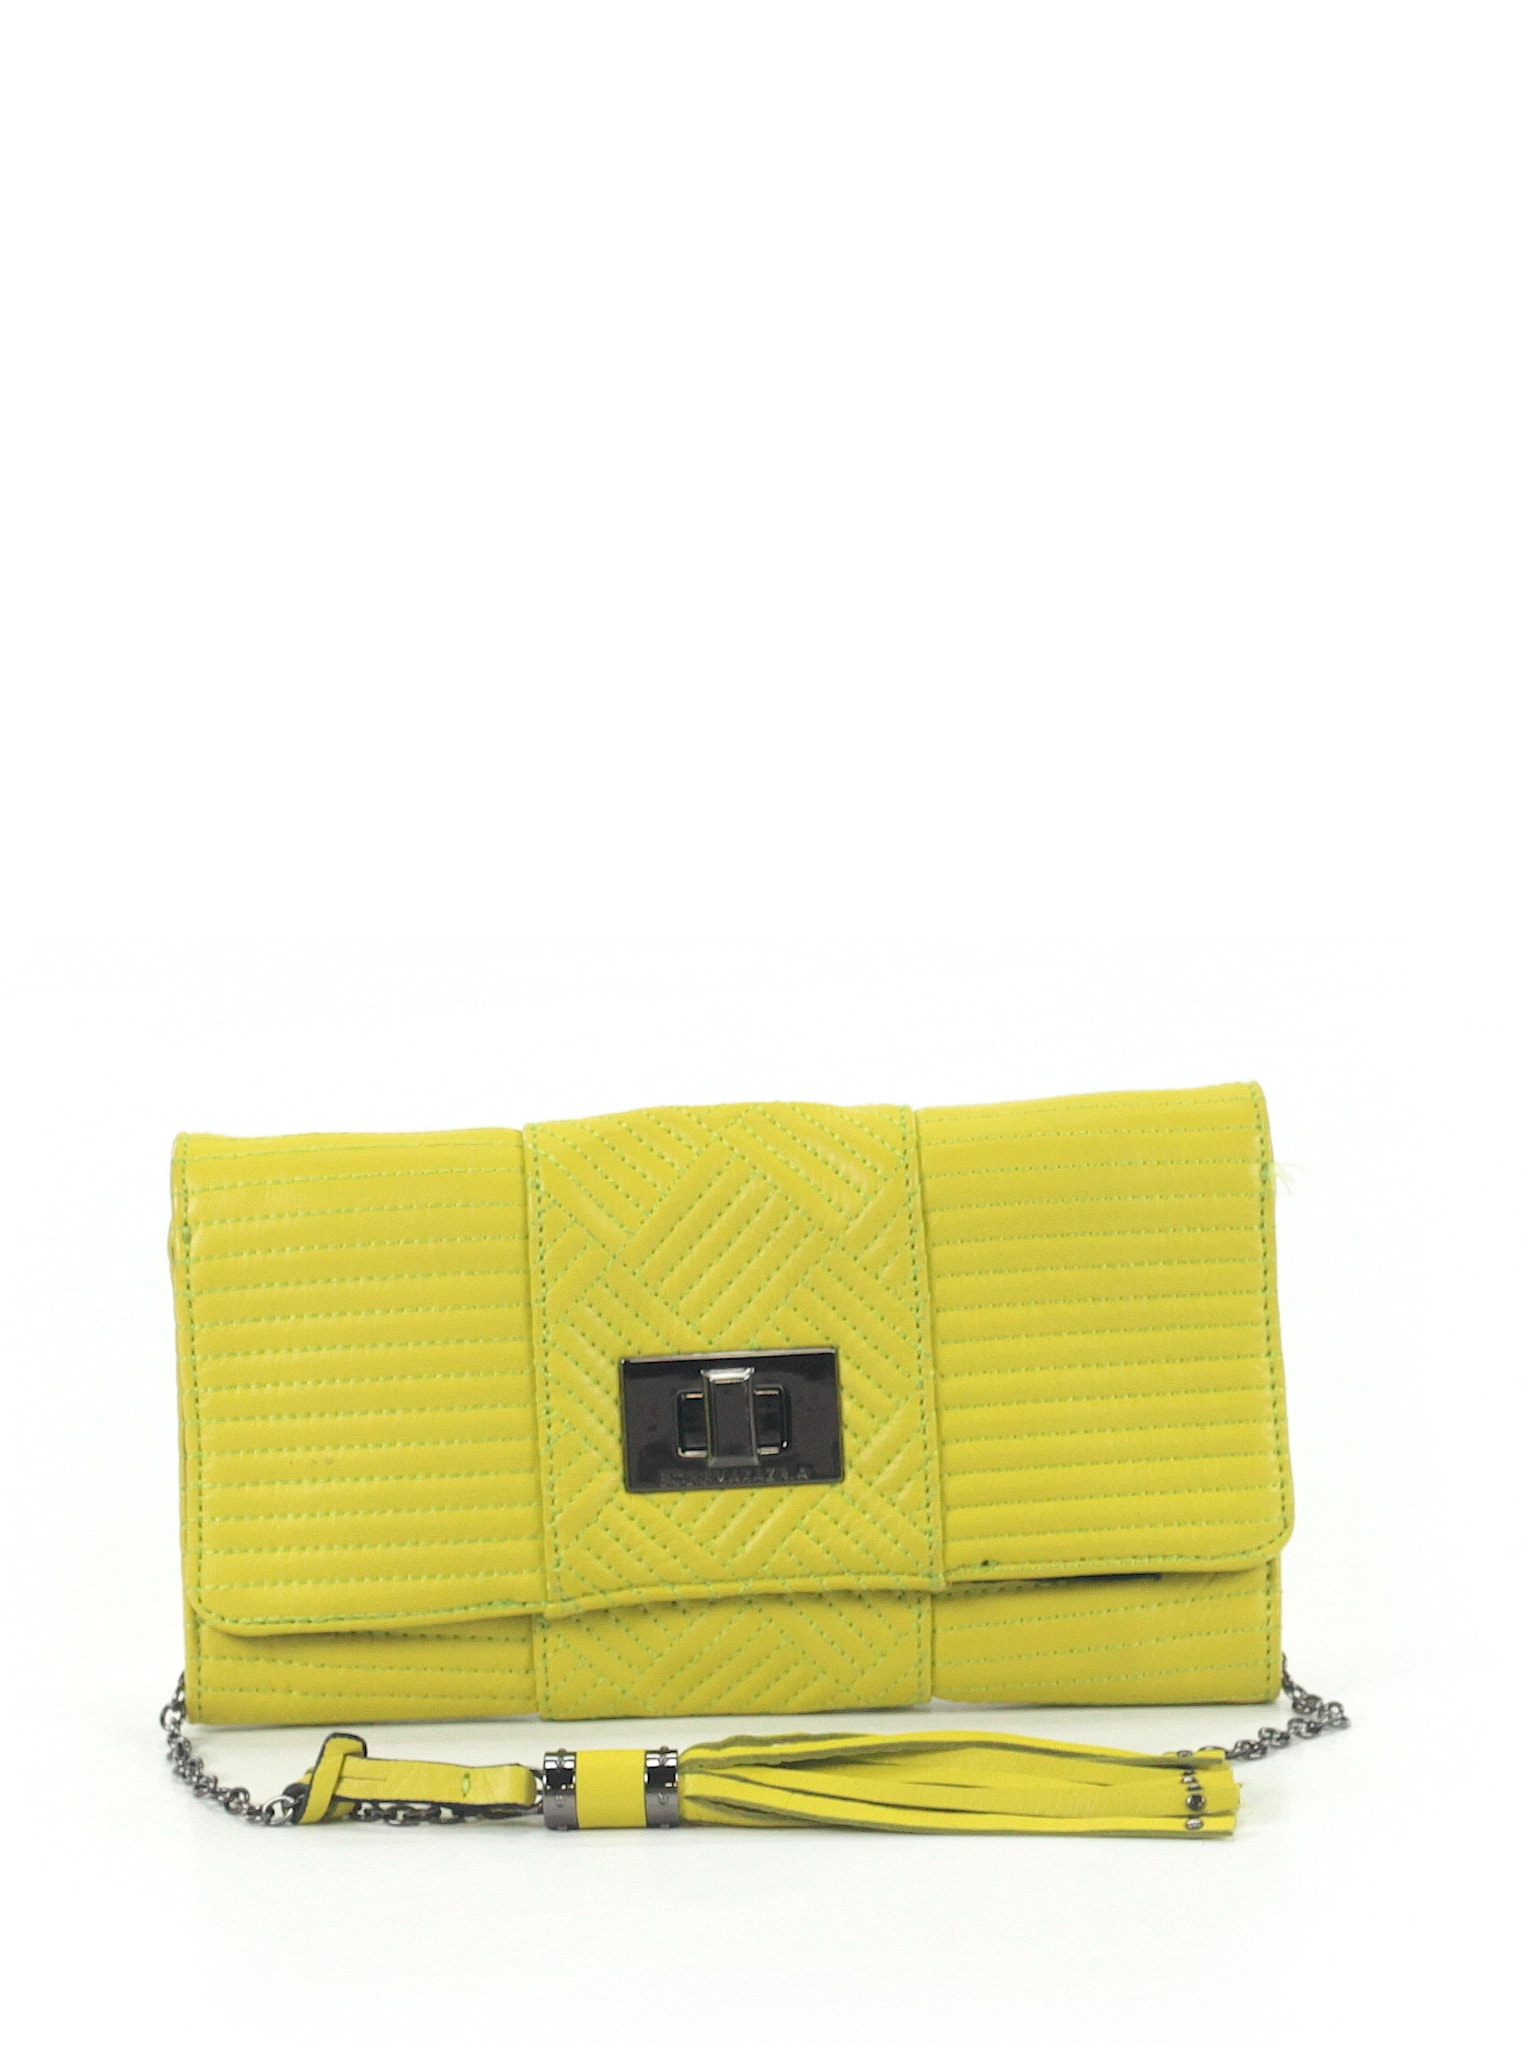 BCBGMAXAZRIA Handbag - Add a pop of color to a darker night-out ensemble with this statement crossbody bag.